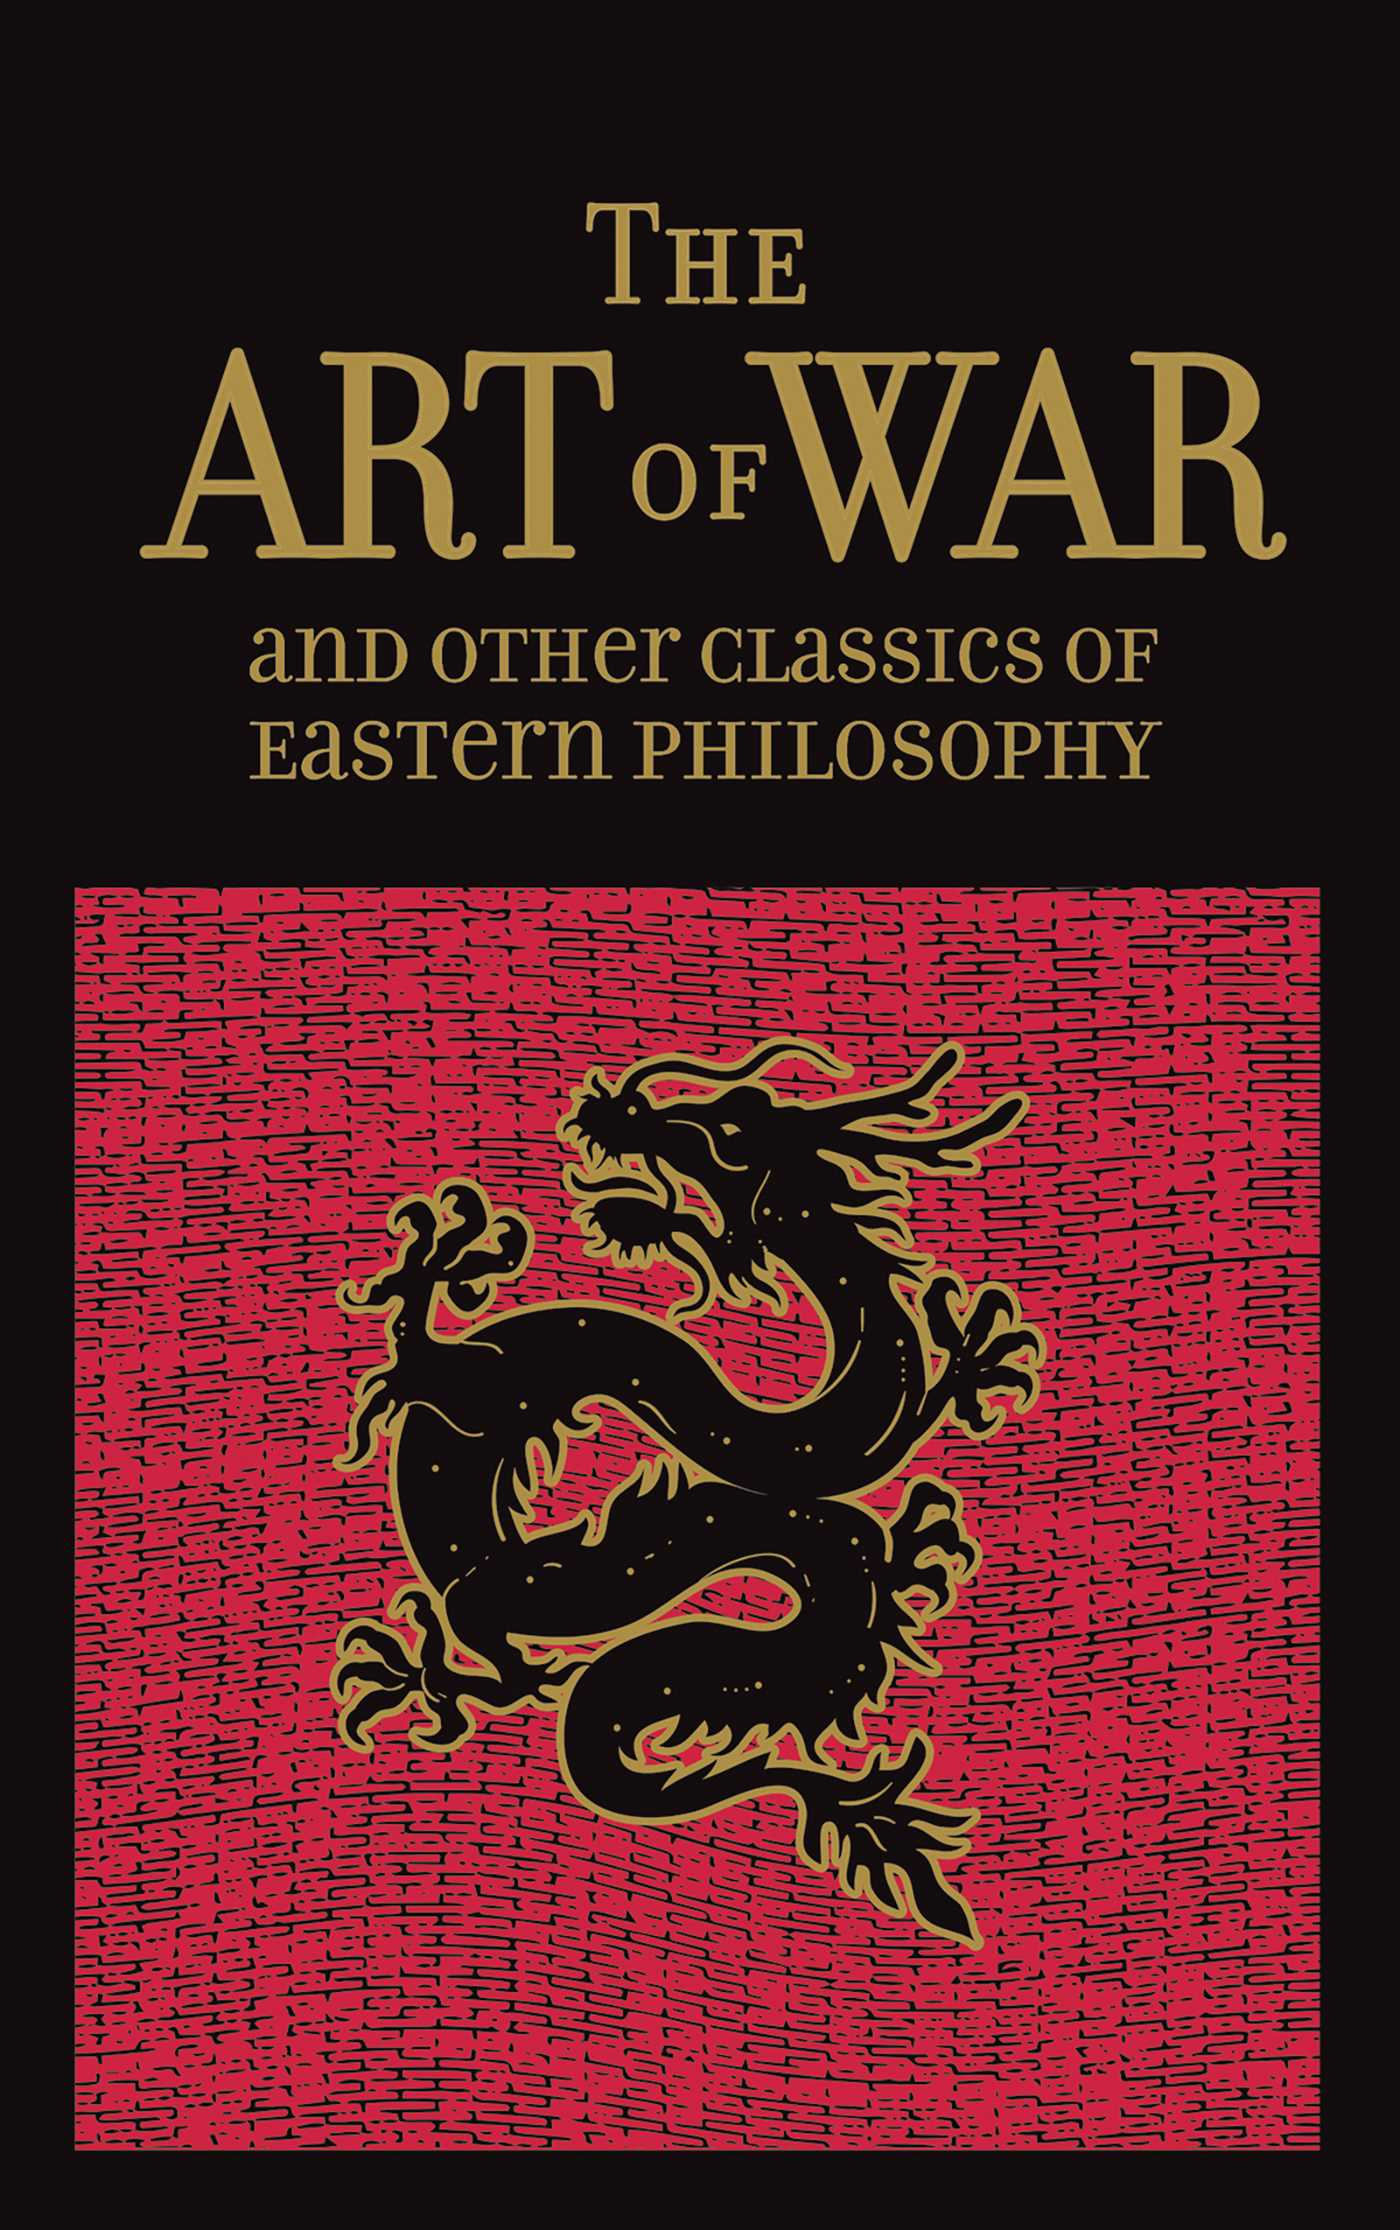 The art of war other classics of eastern philosophy ebook by sun book cover image jpg the art of war other classics of eastern philosophy ebook 9781626868205 fandeluxe Images